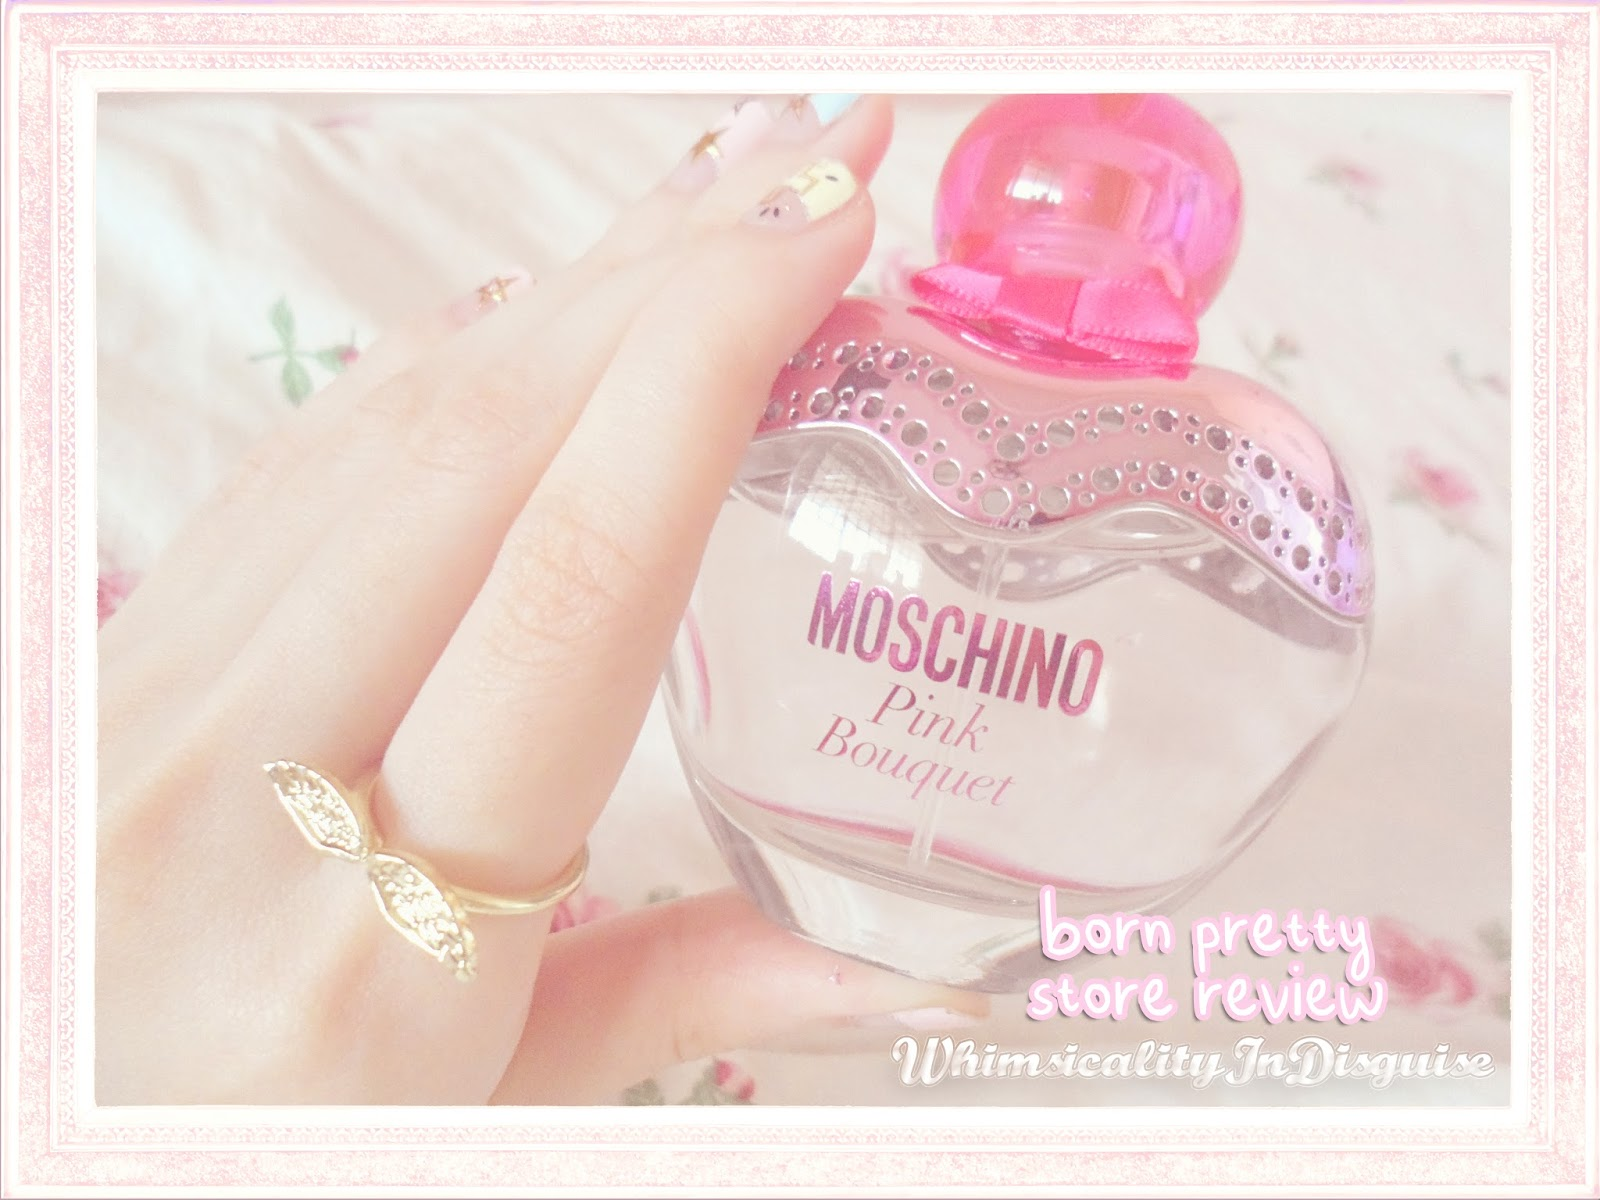 Moschino Pink Bouquet review